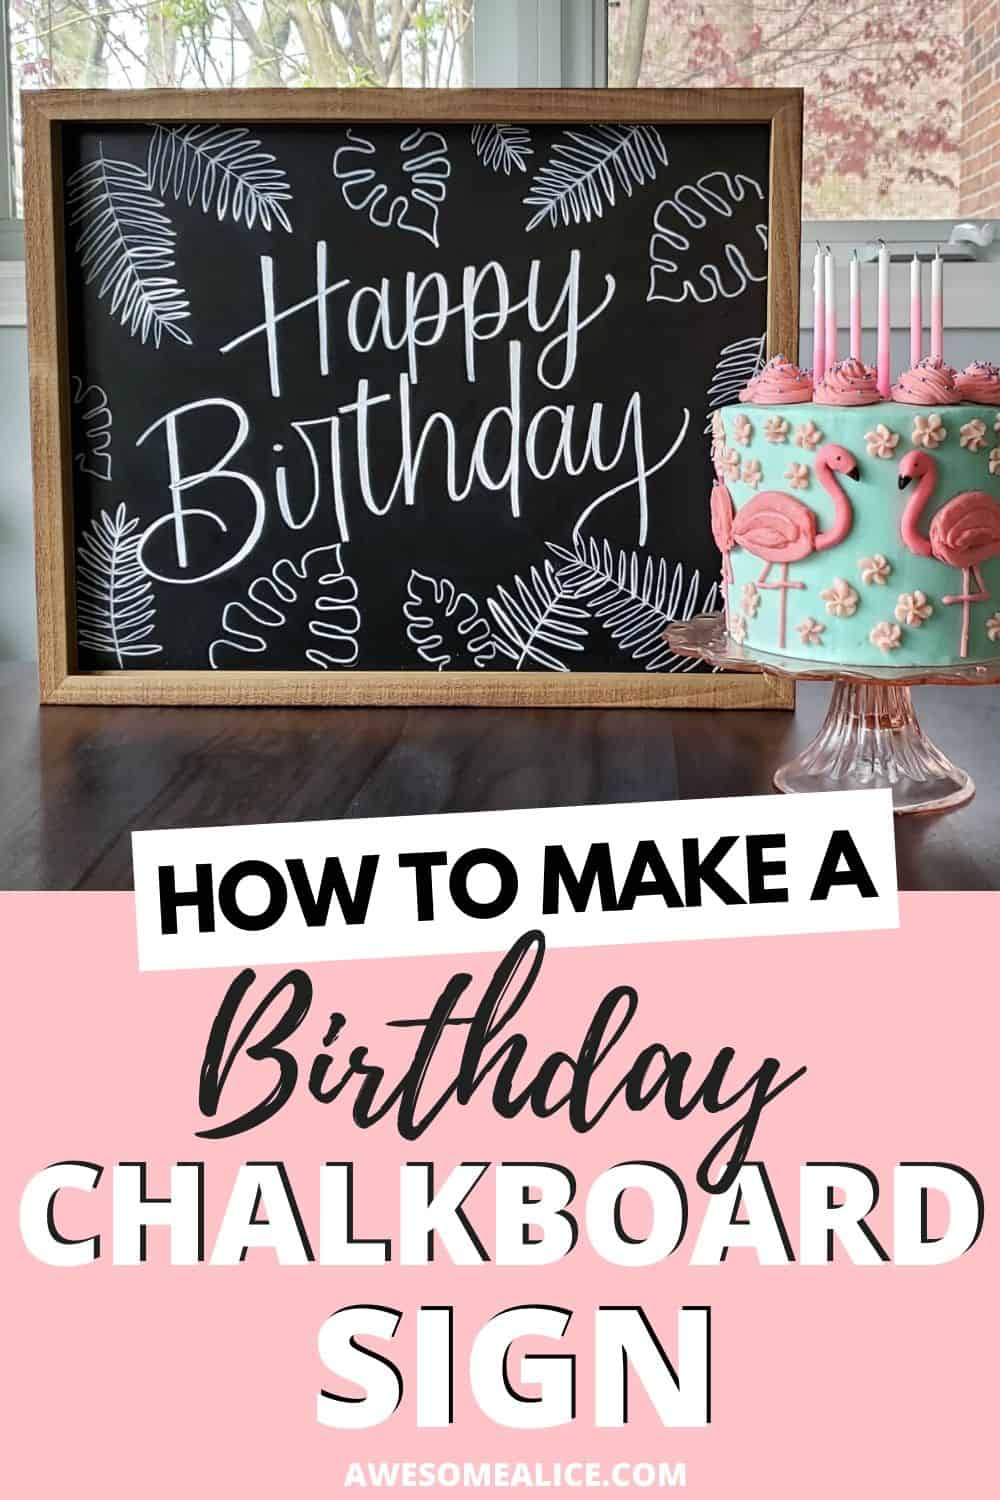 How to make a birthday chalkboard sign